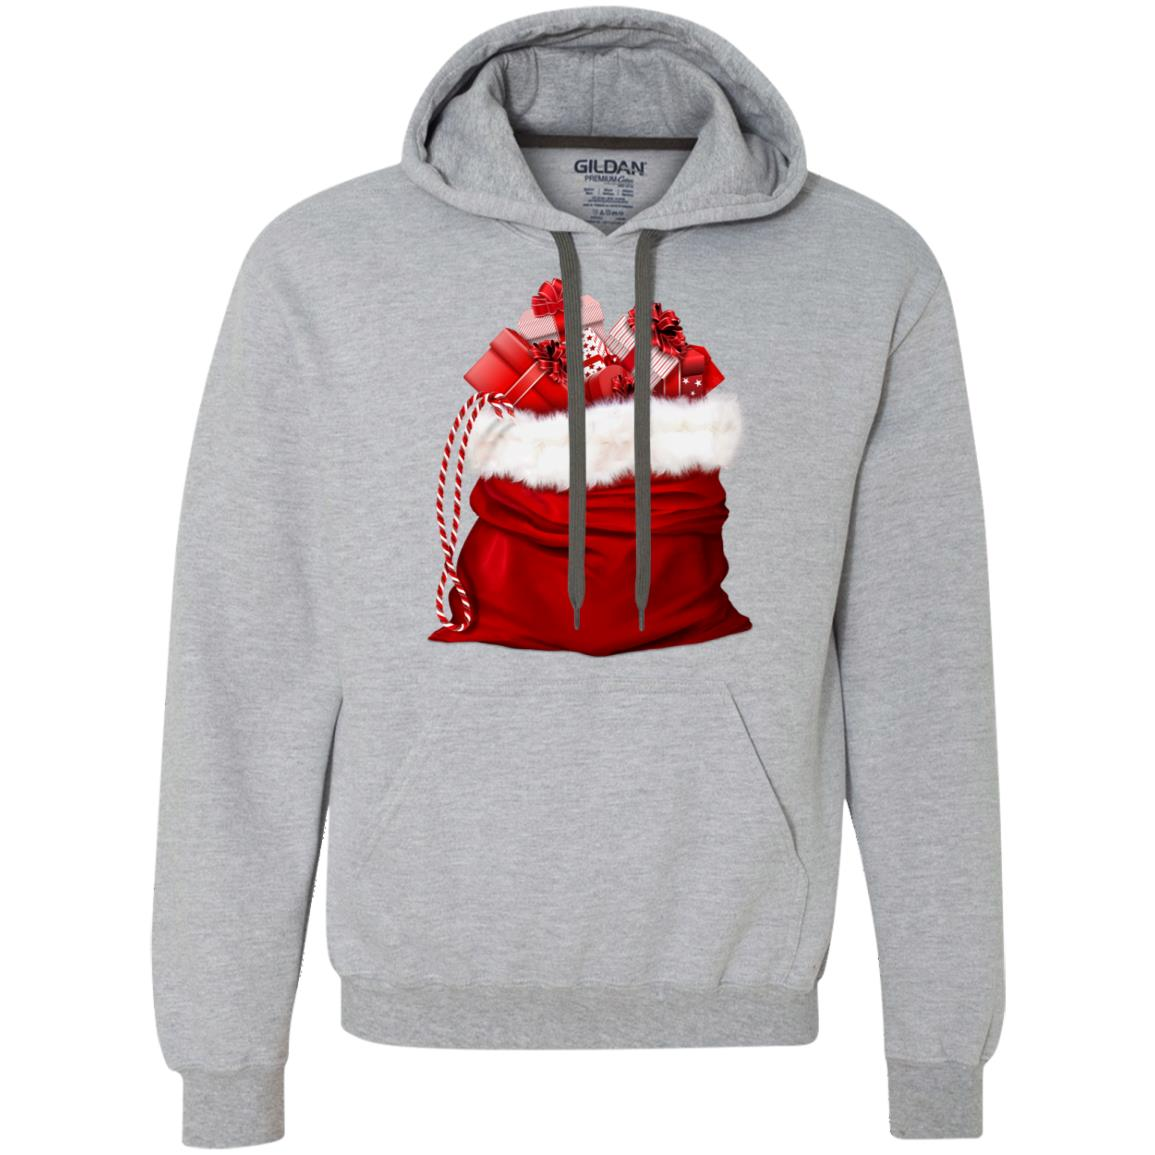 Christmas Santa Claus Gift Bag Pullover Fleece Sweatshirt